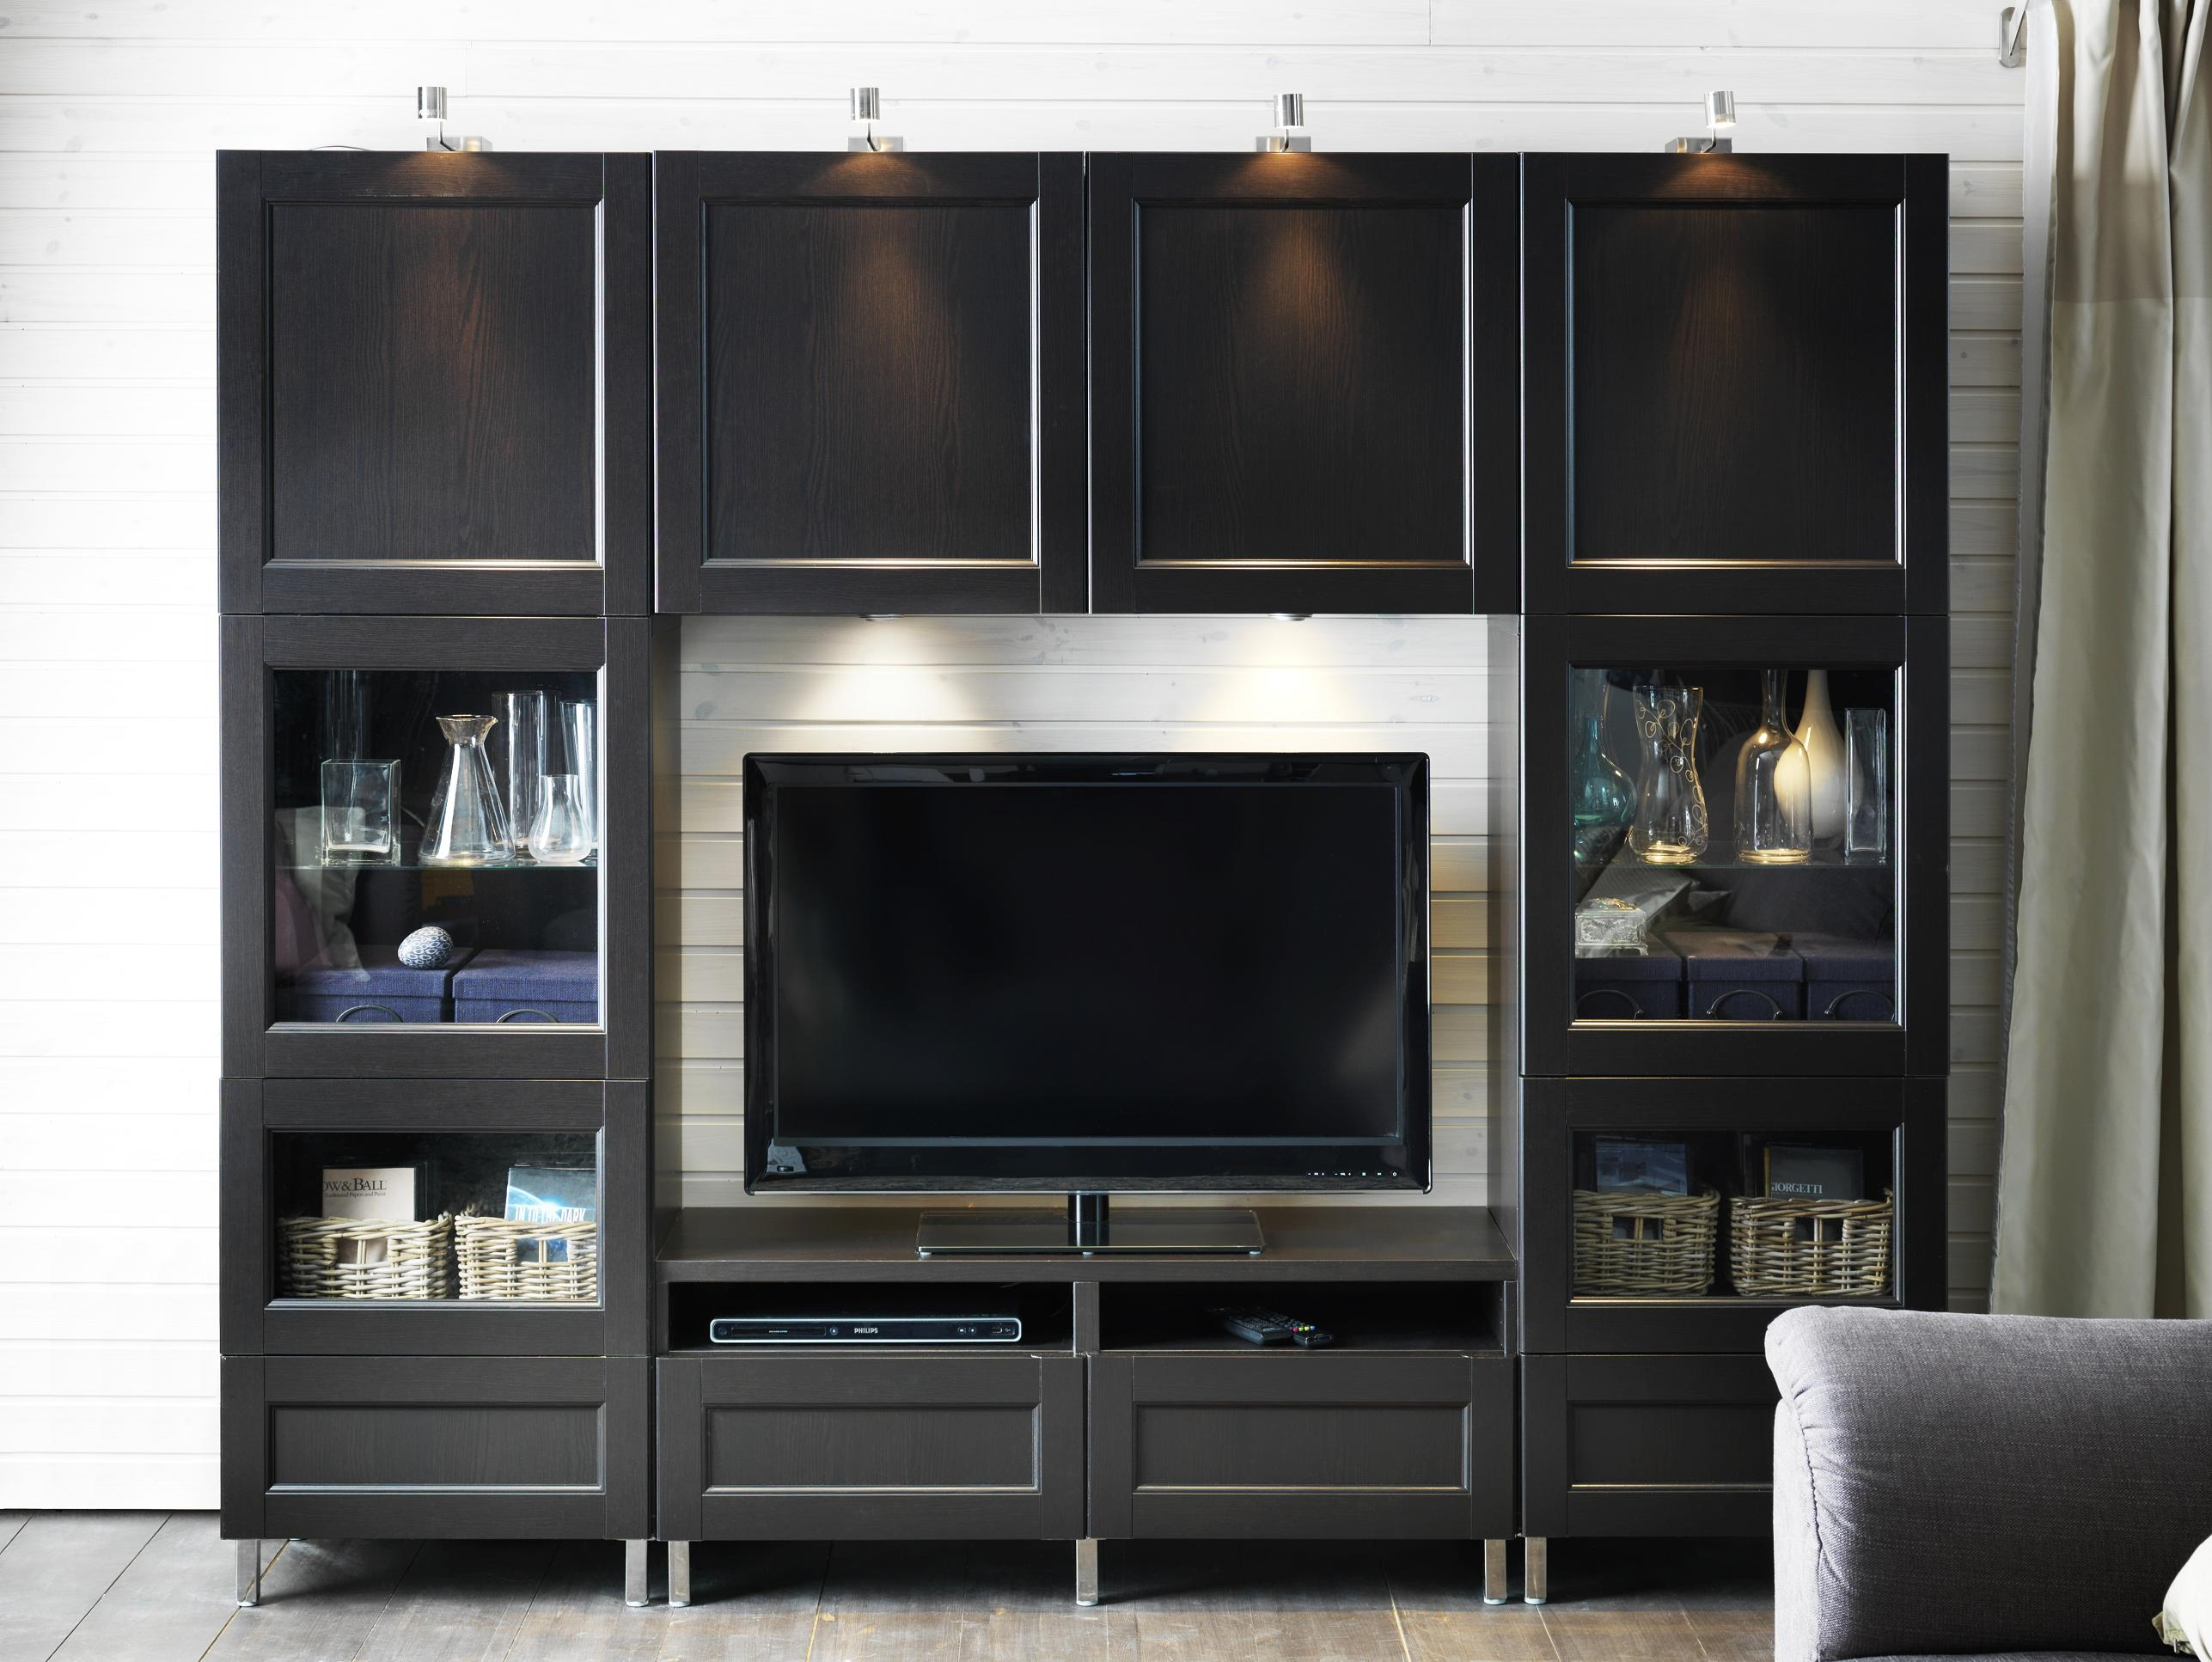 Kitchen Tv Under Cabinet Mount Studio 5 Fall Home Show Small Space Solutions